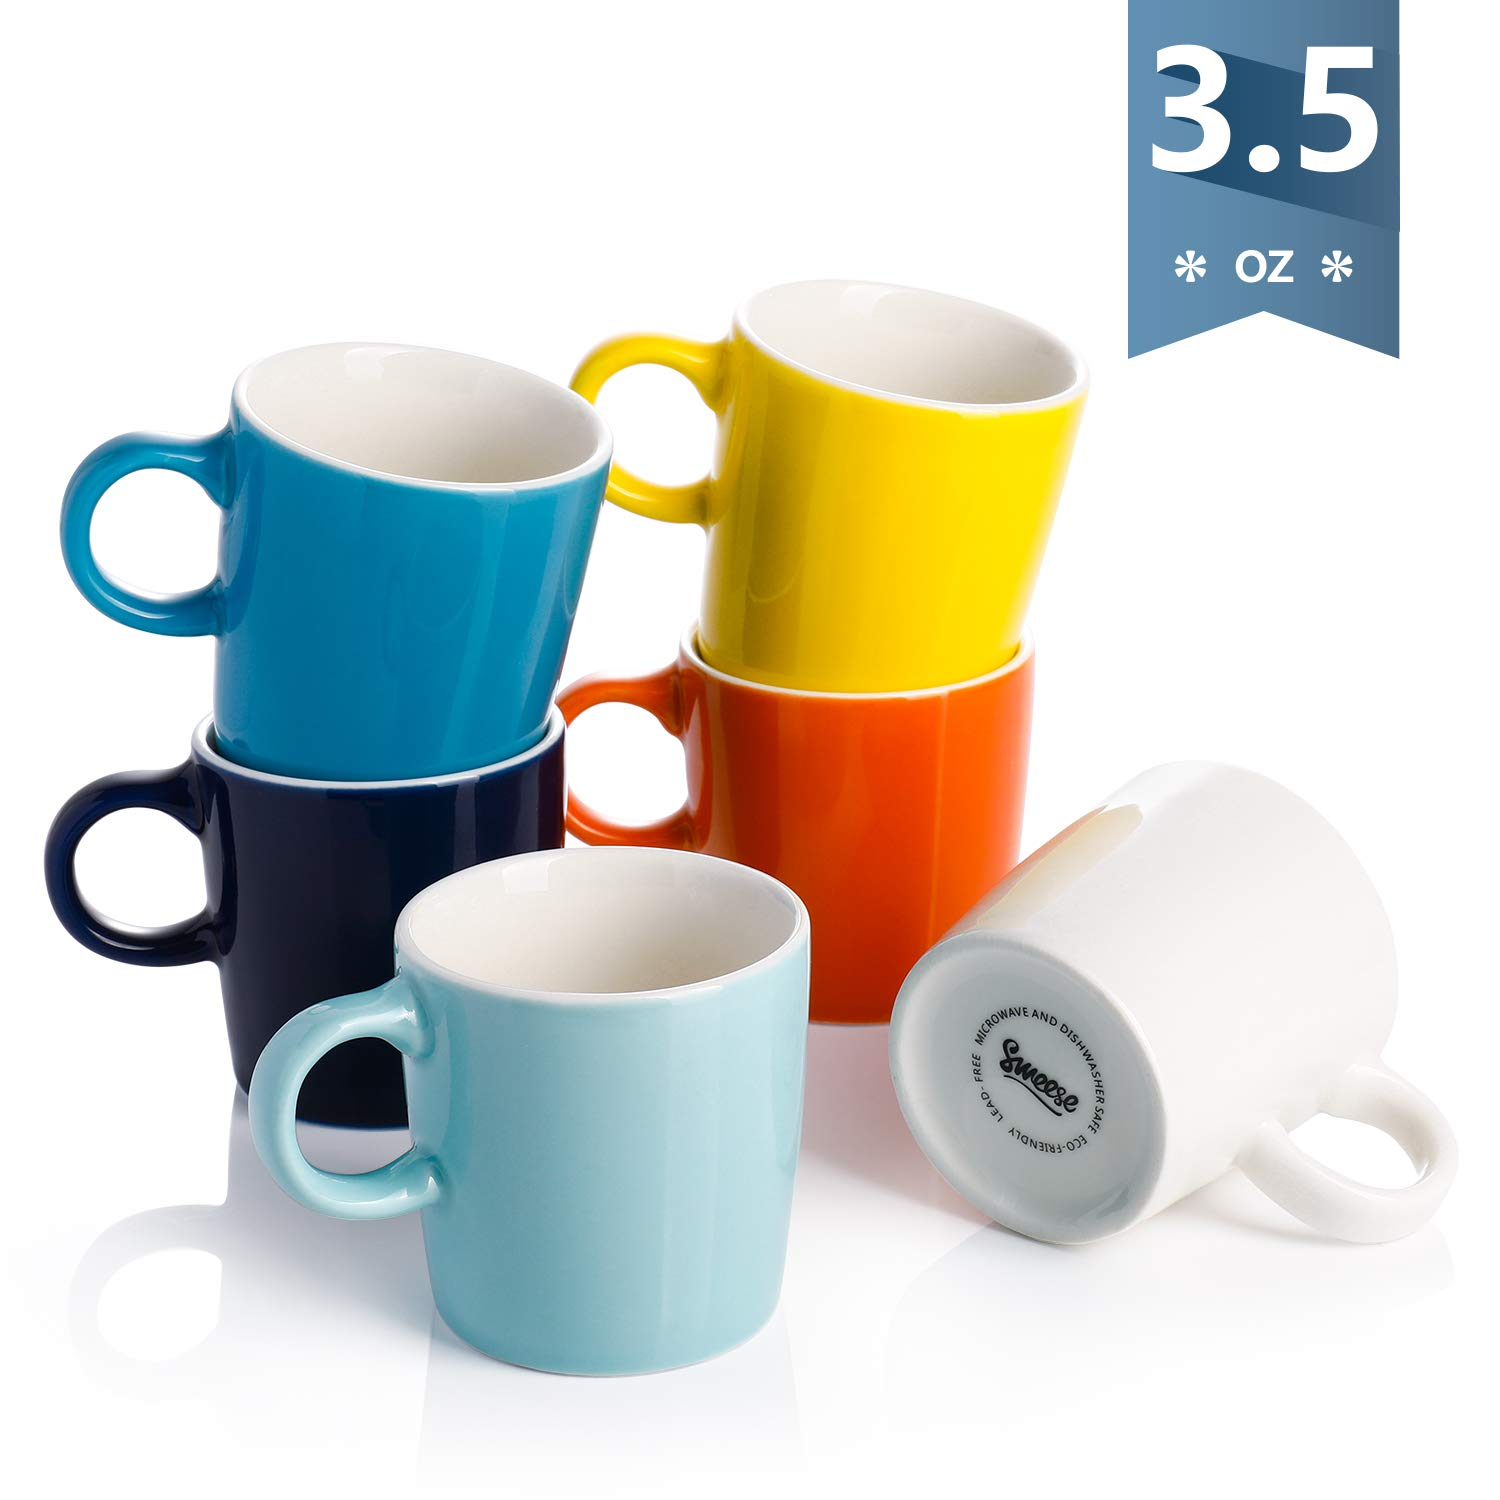 Sweese 409 002 Porcelain Espresso Cups